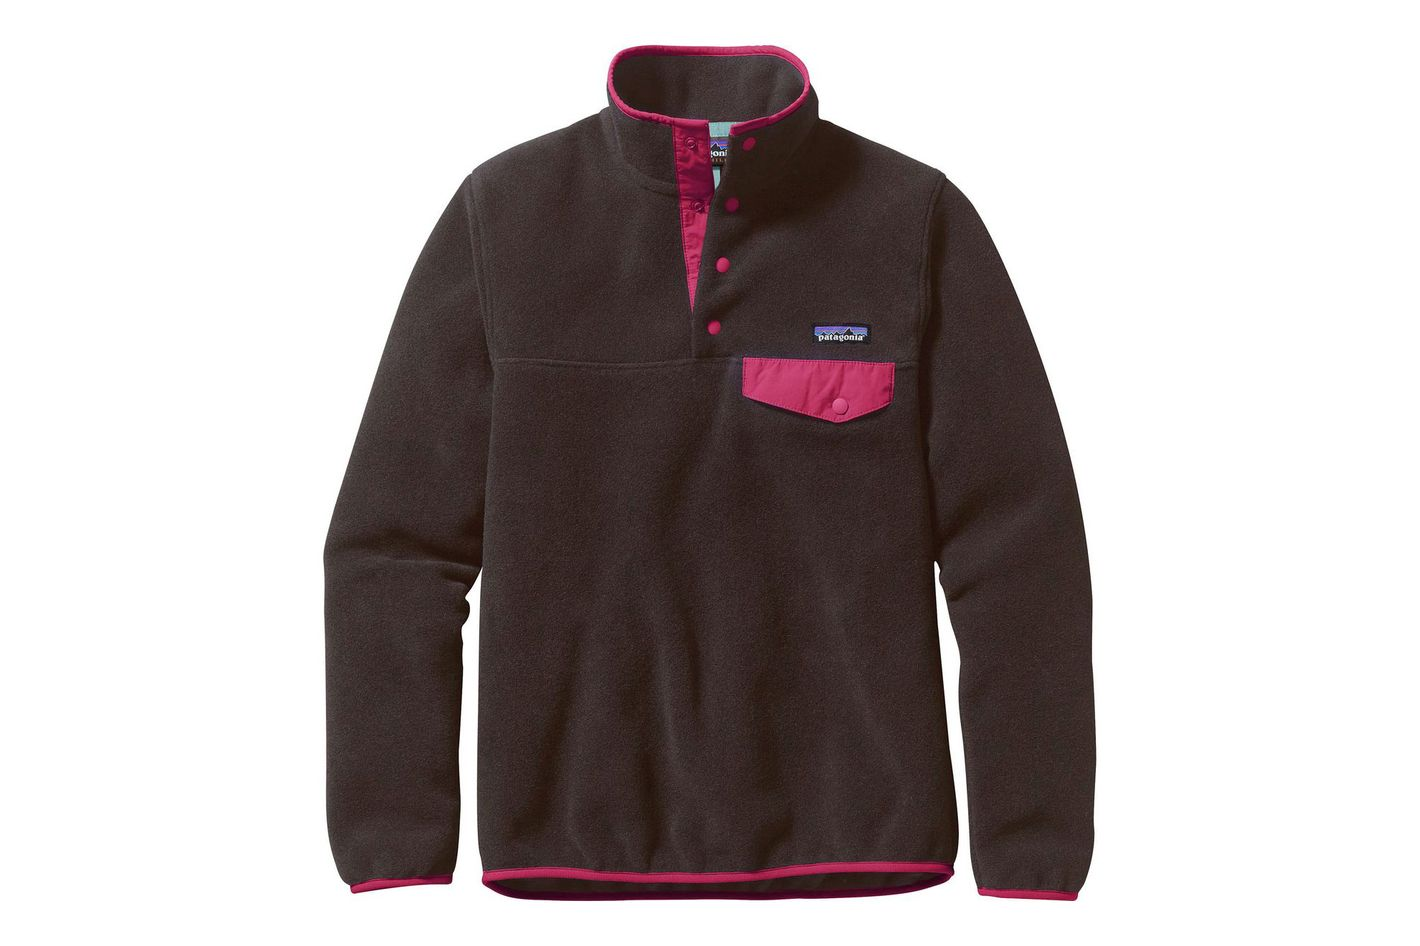 Patagonia Synchilla Lightweight Snap-T Fleece Pullover in Ink Black